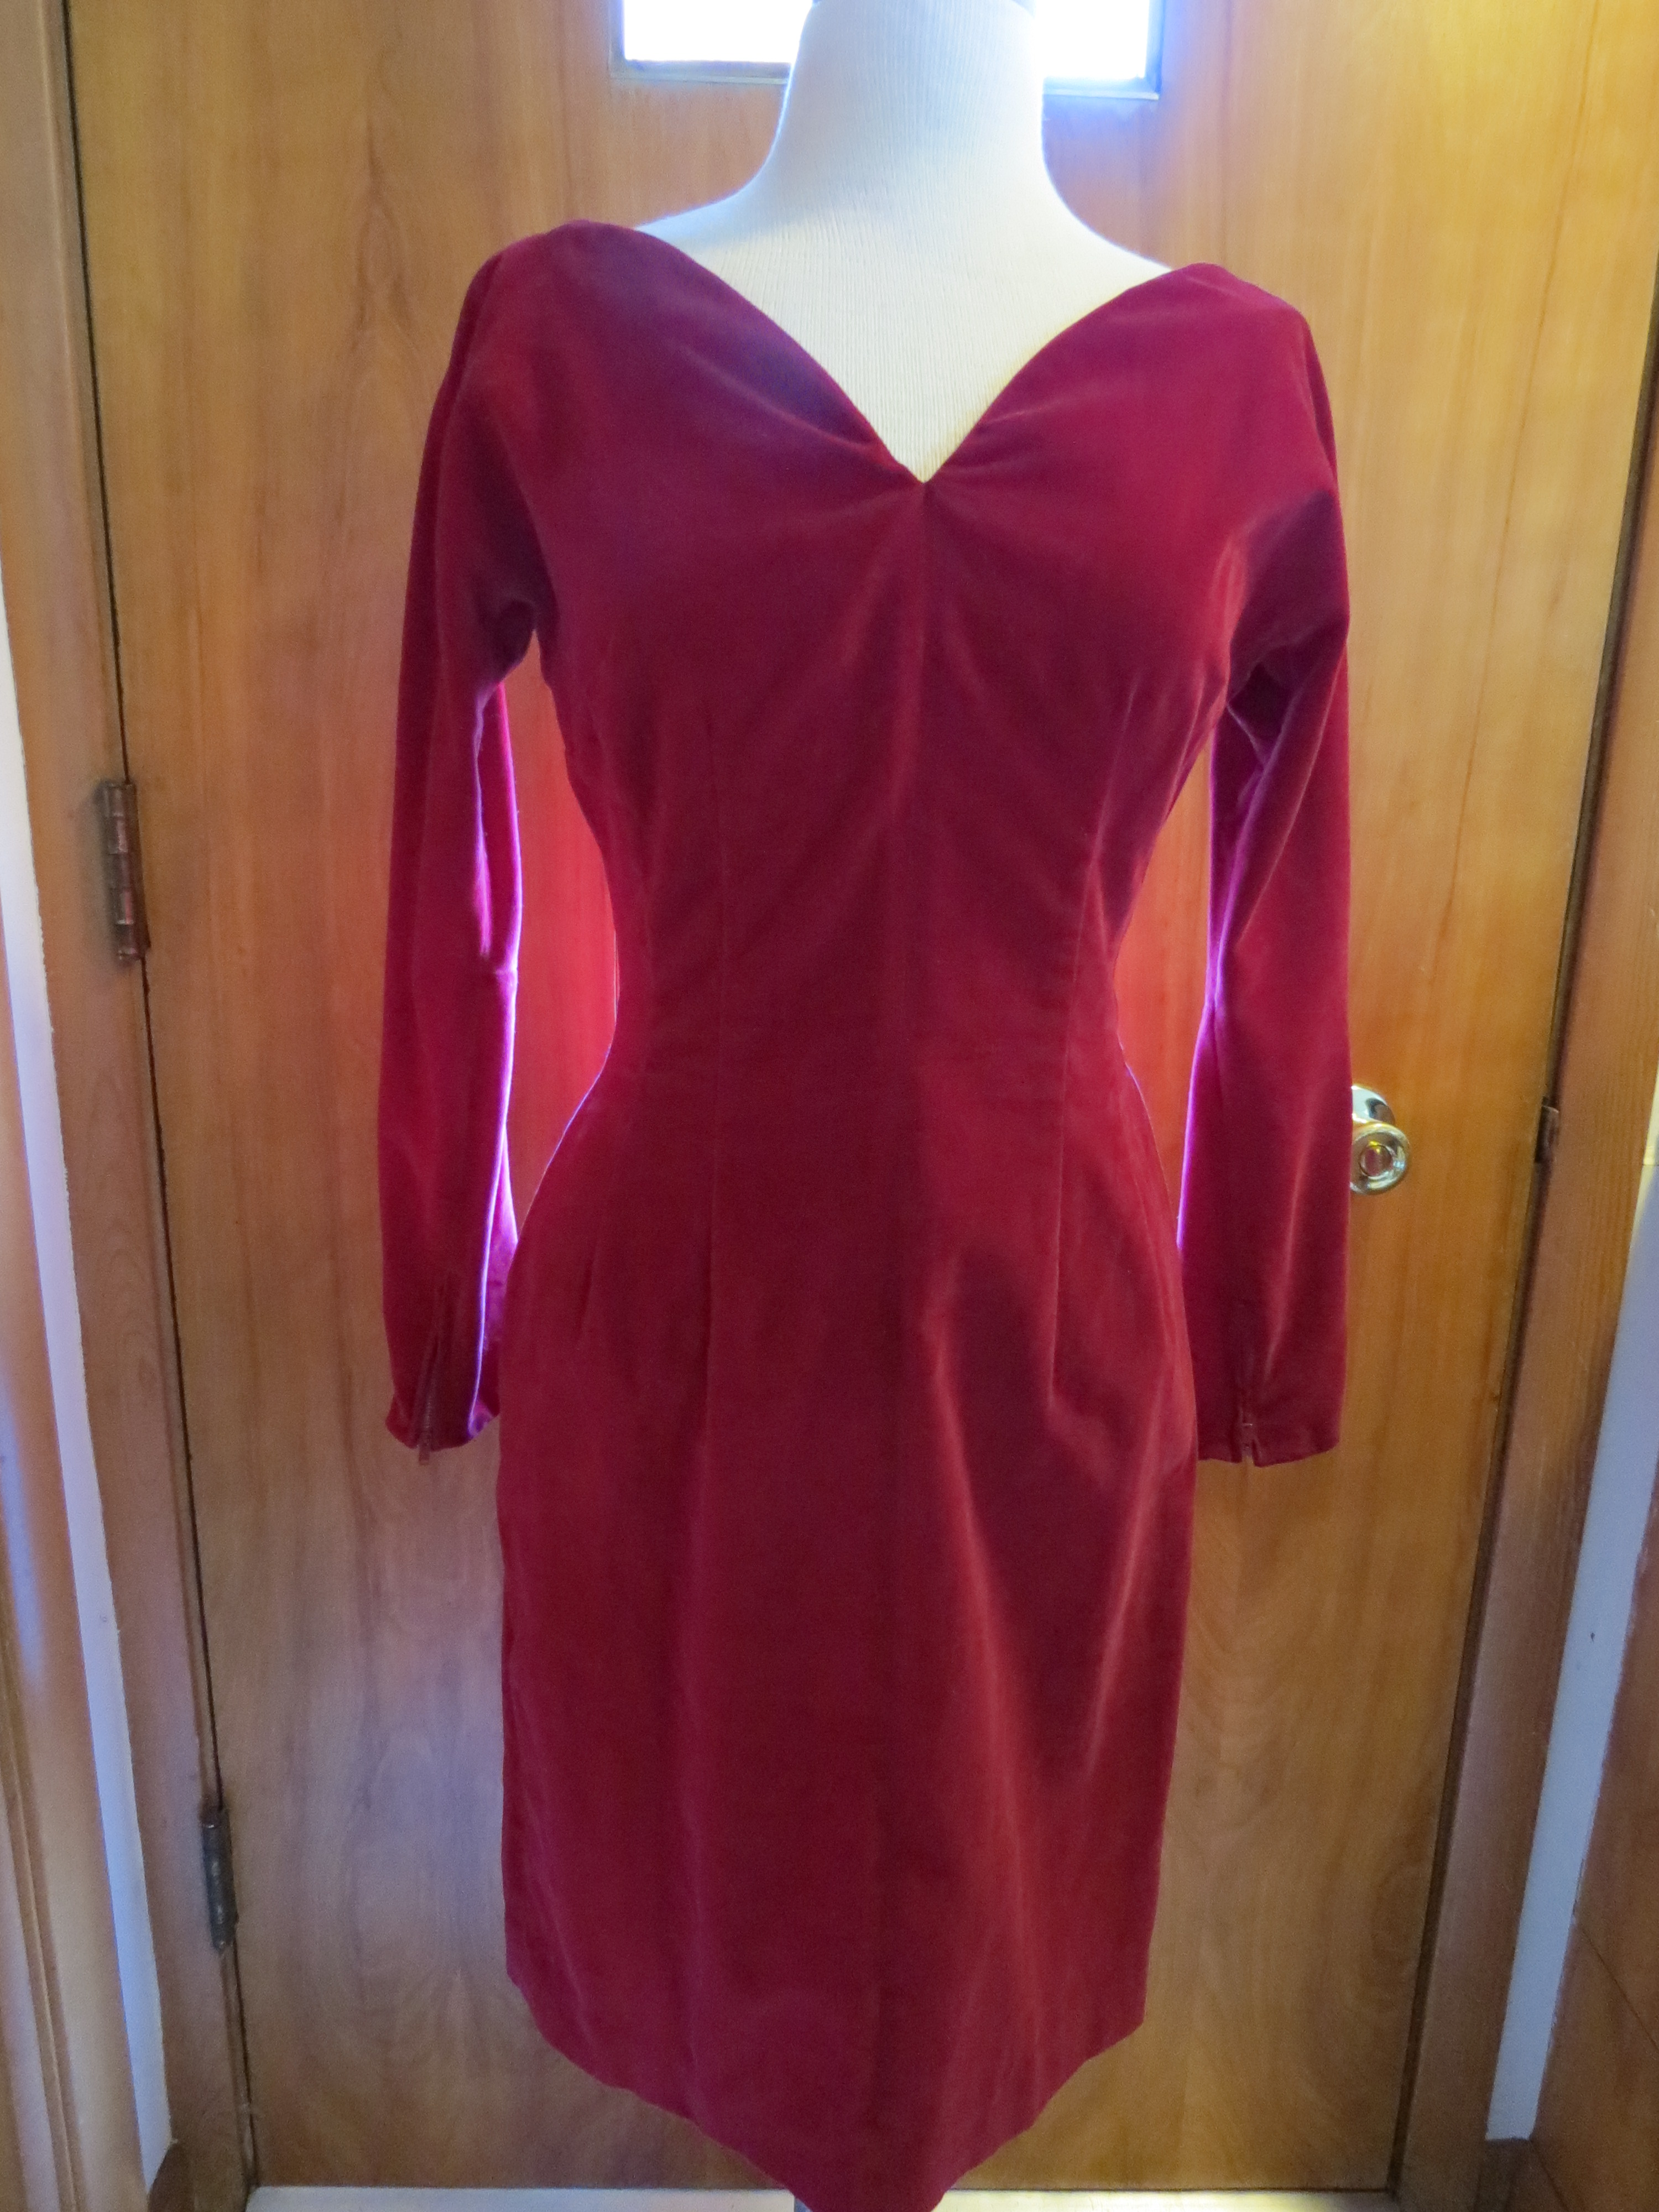 TRUE VINTAGE 1950S WIGGLE DRESS FOR VALENTINE'S DAY